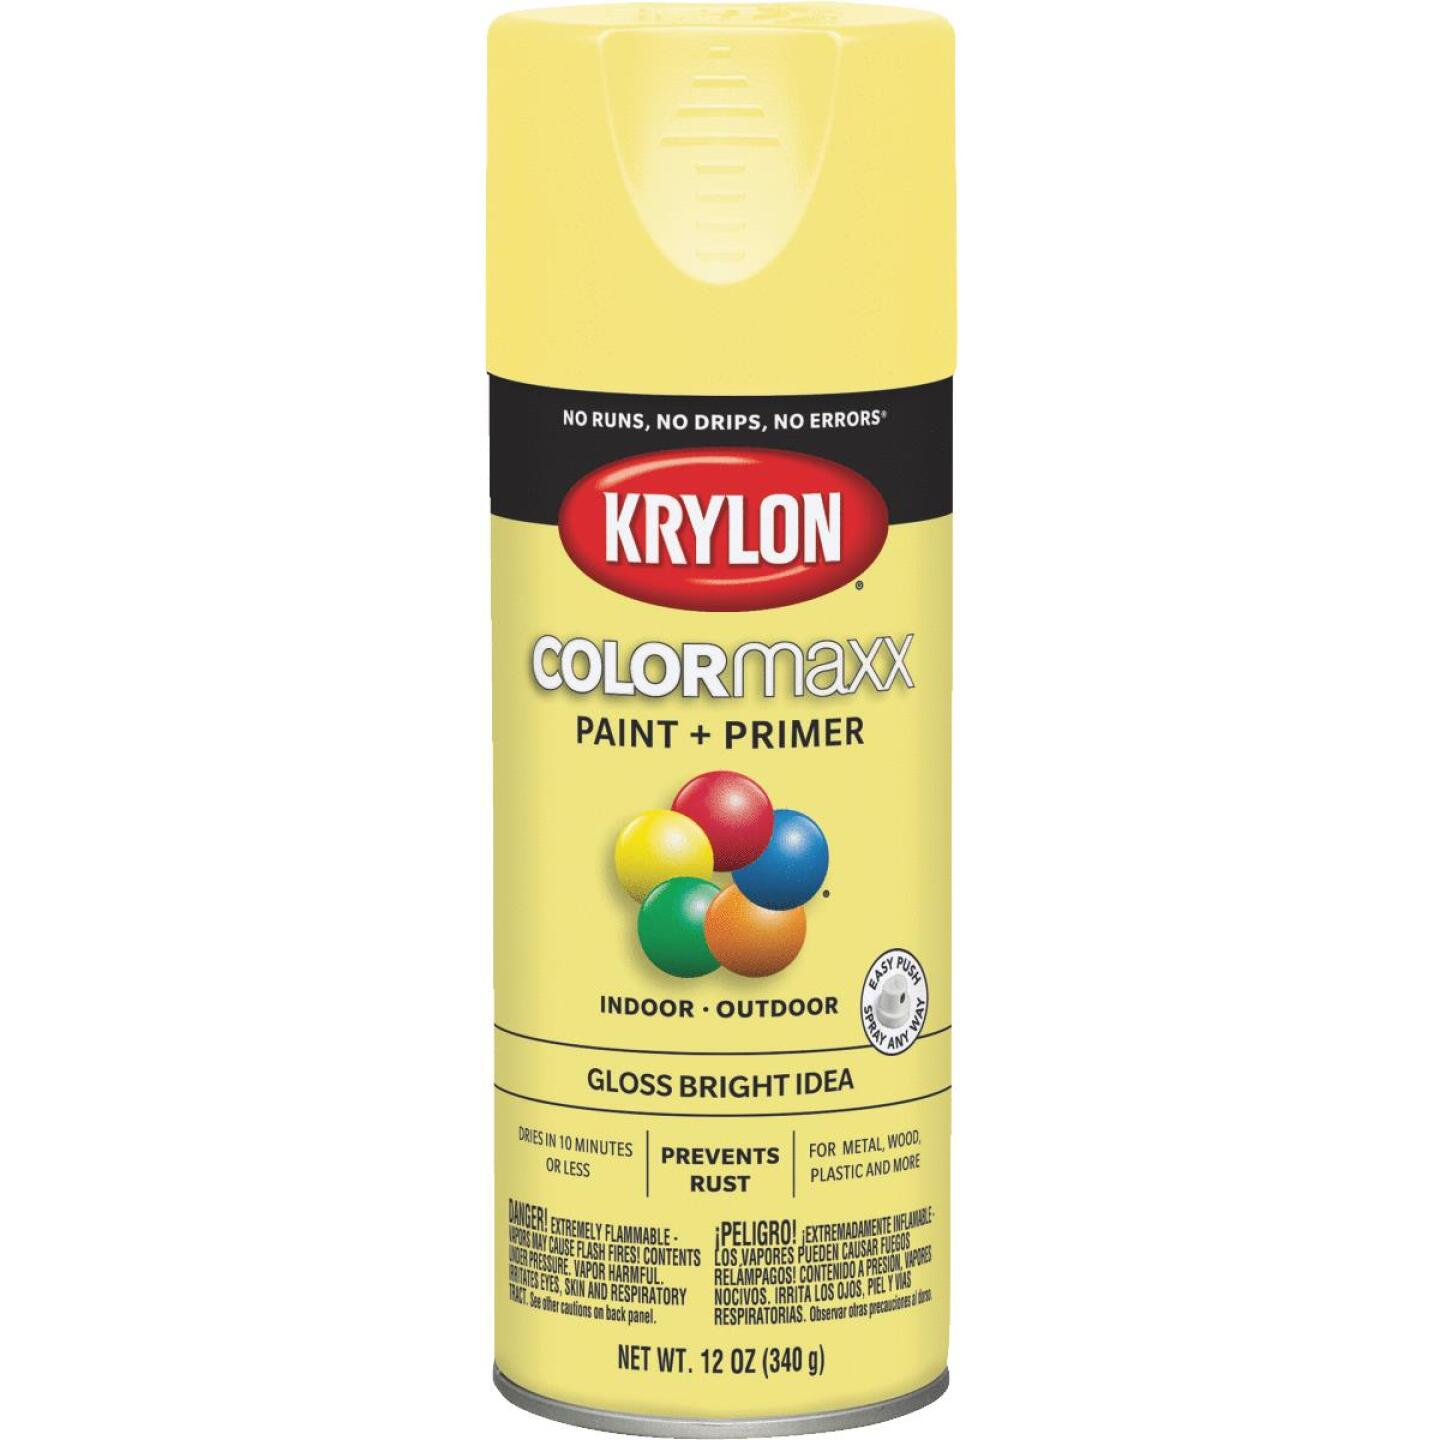 Krylon ColorMaxx 12 Oz. Gloss Spray Paint, Bright Idea Image 1